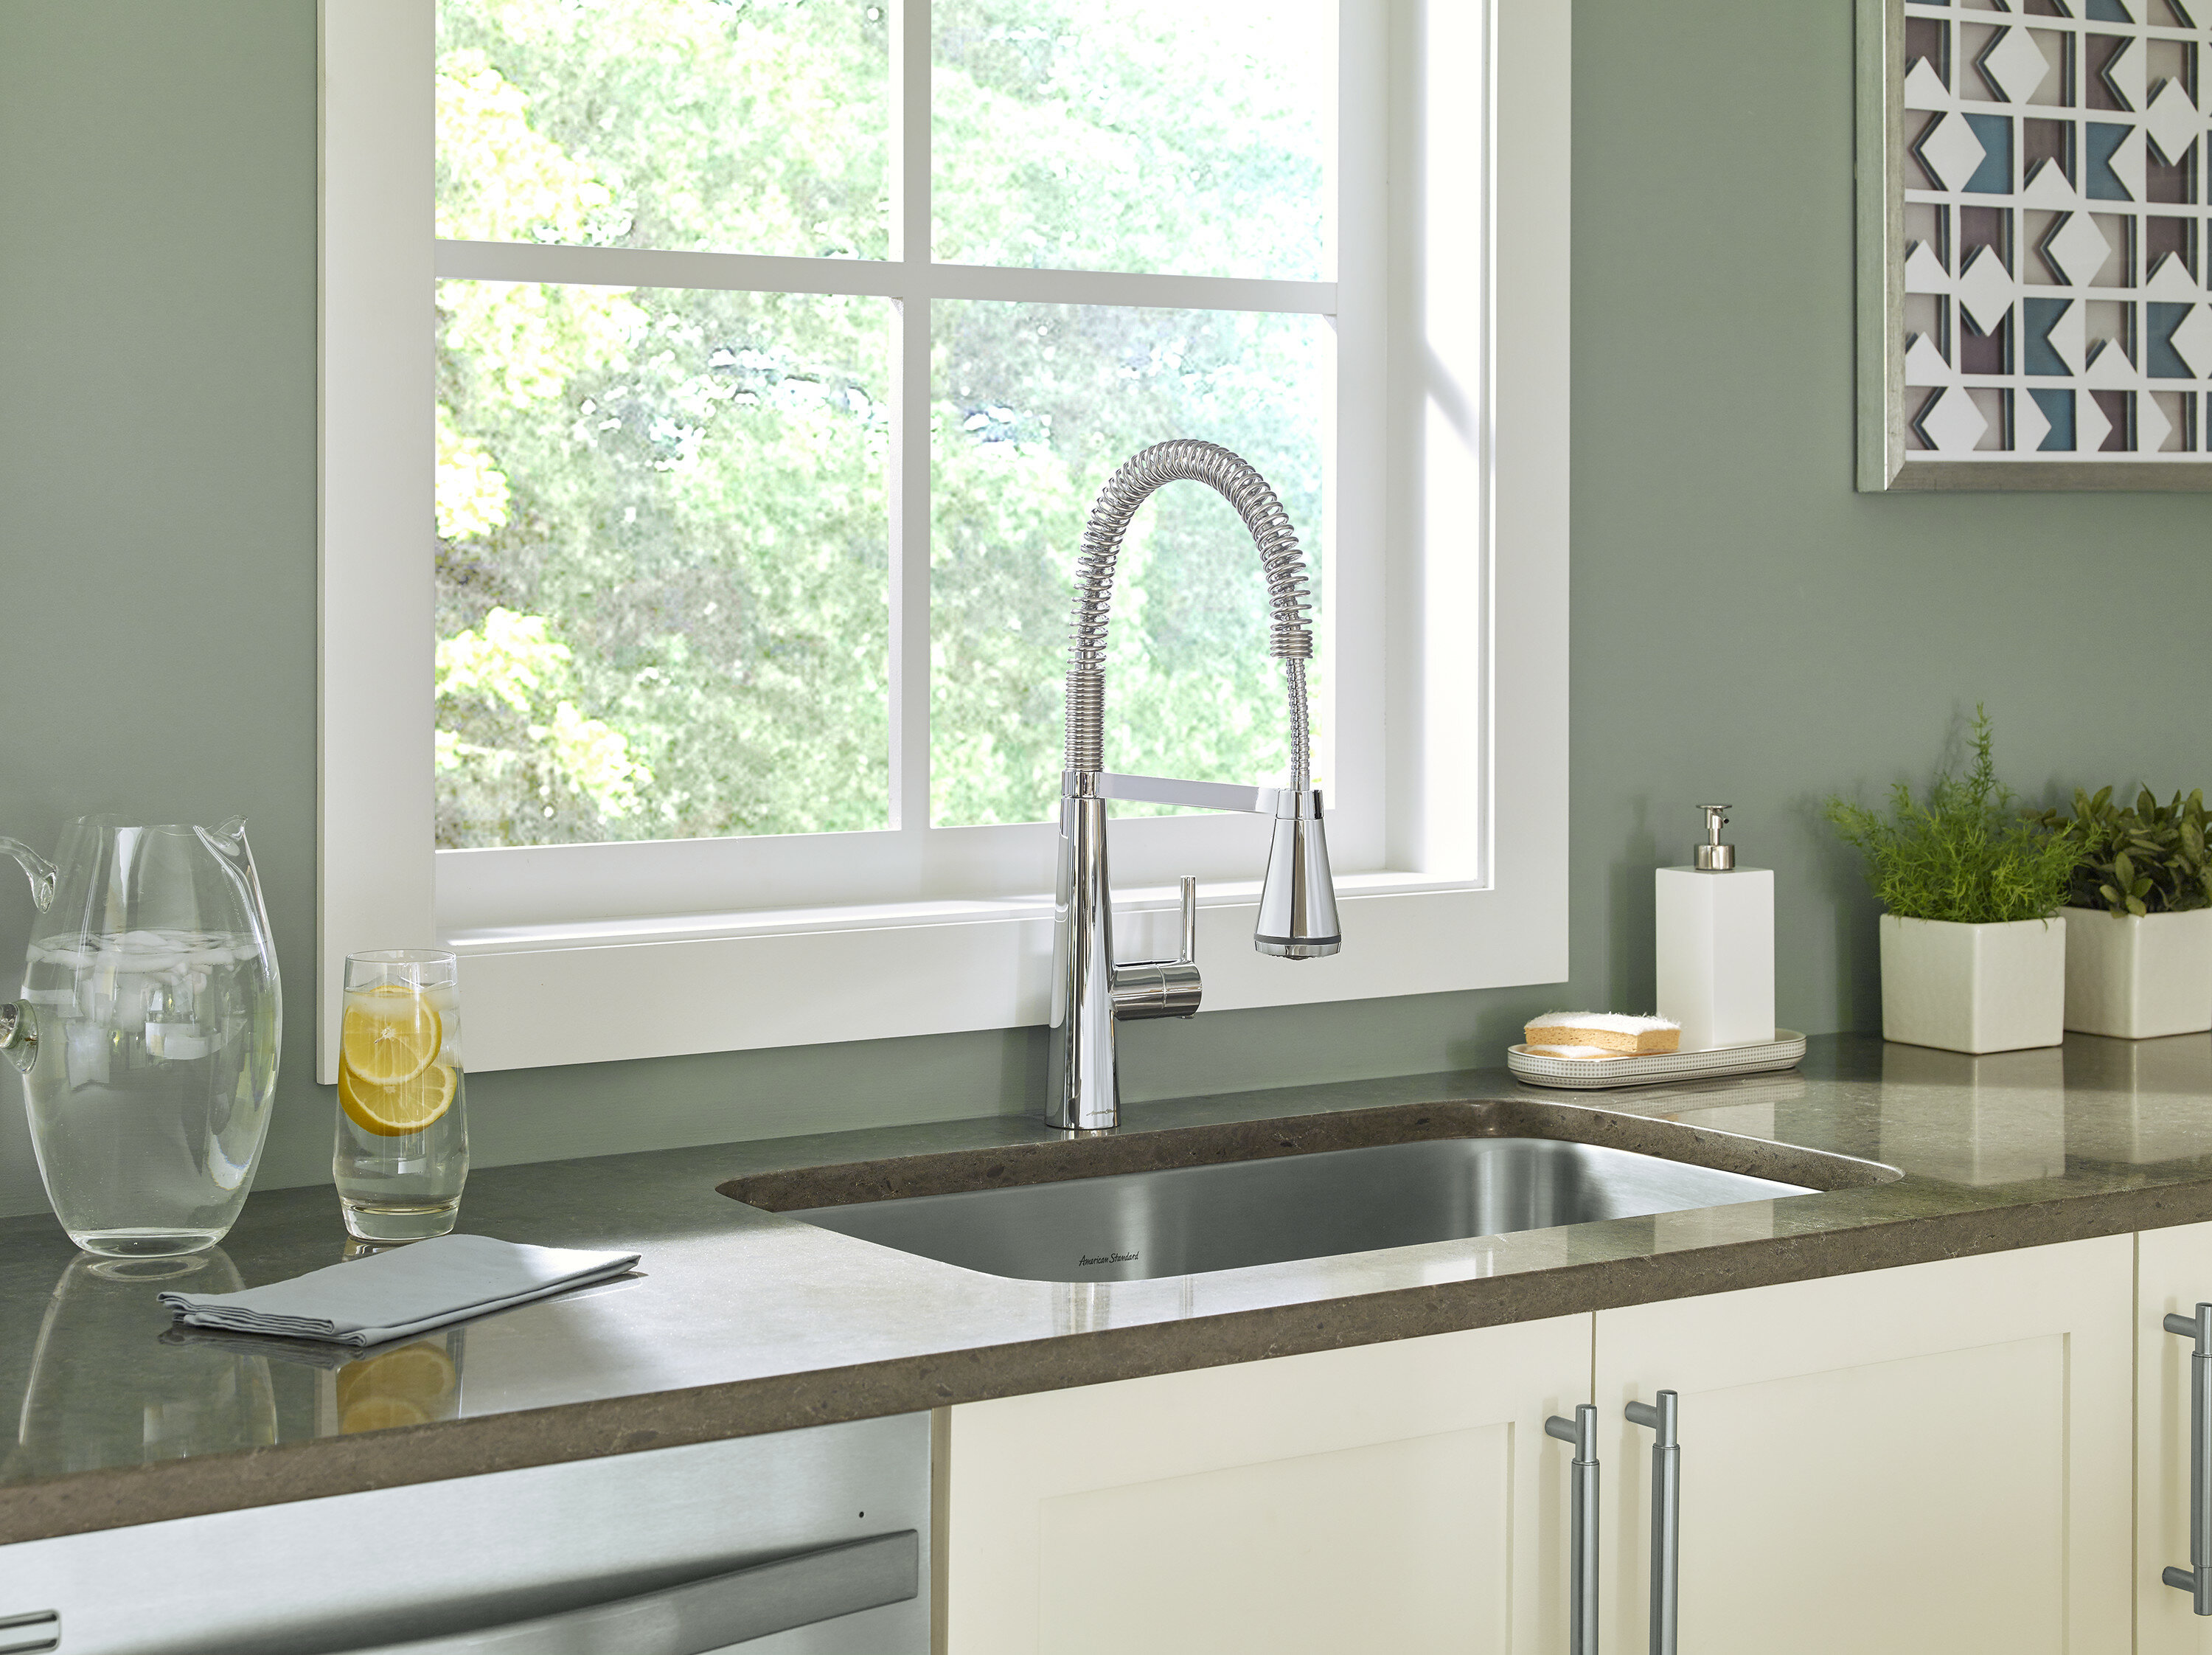 How to Measure for a New Kitchen Faucet | Wayfair